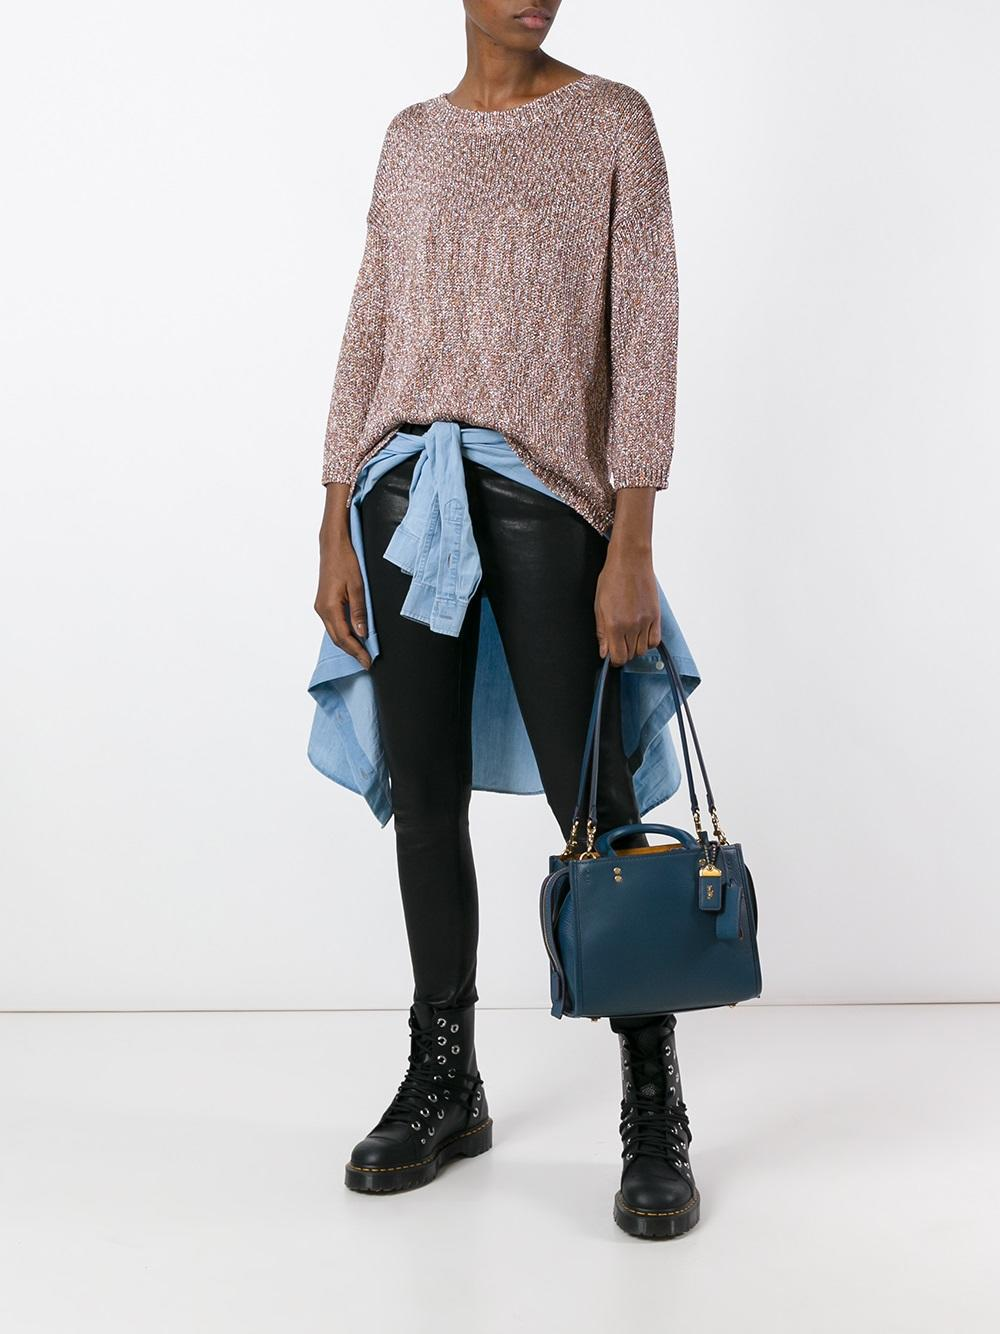 COACH Leather Detachable Straps Tote in Blue